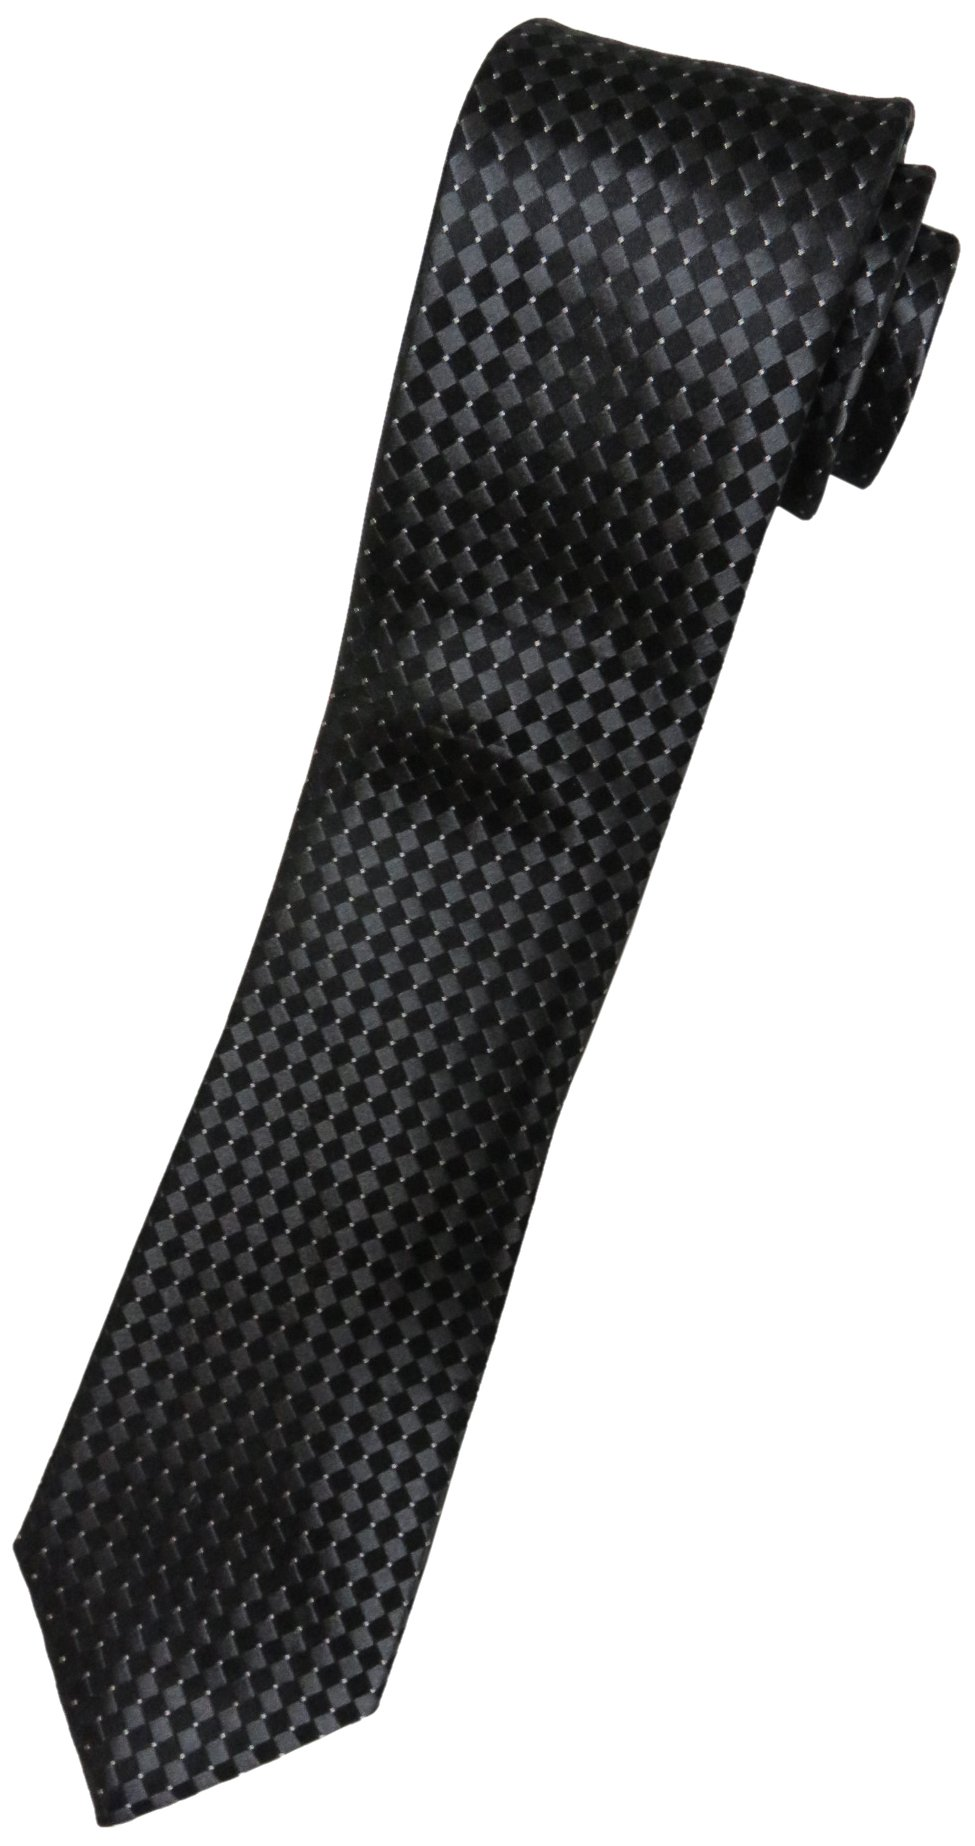 Donald Trump Neck Tie Black Charcoal and Silver Diamond with Gold Crest